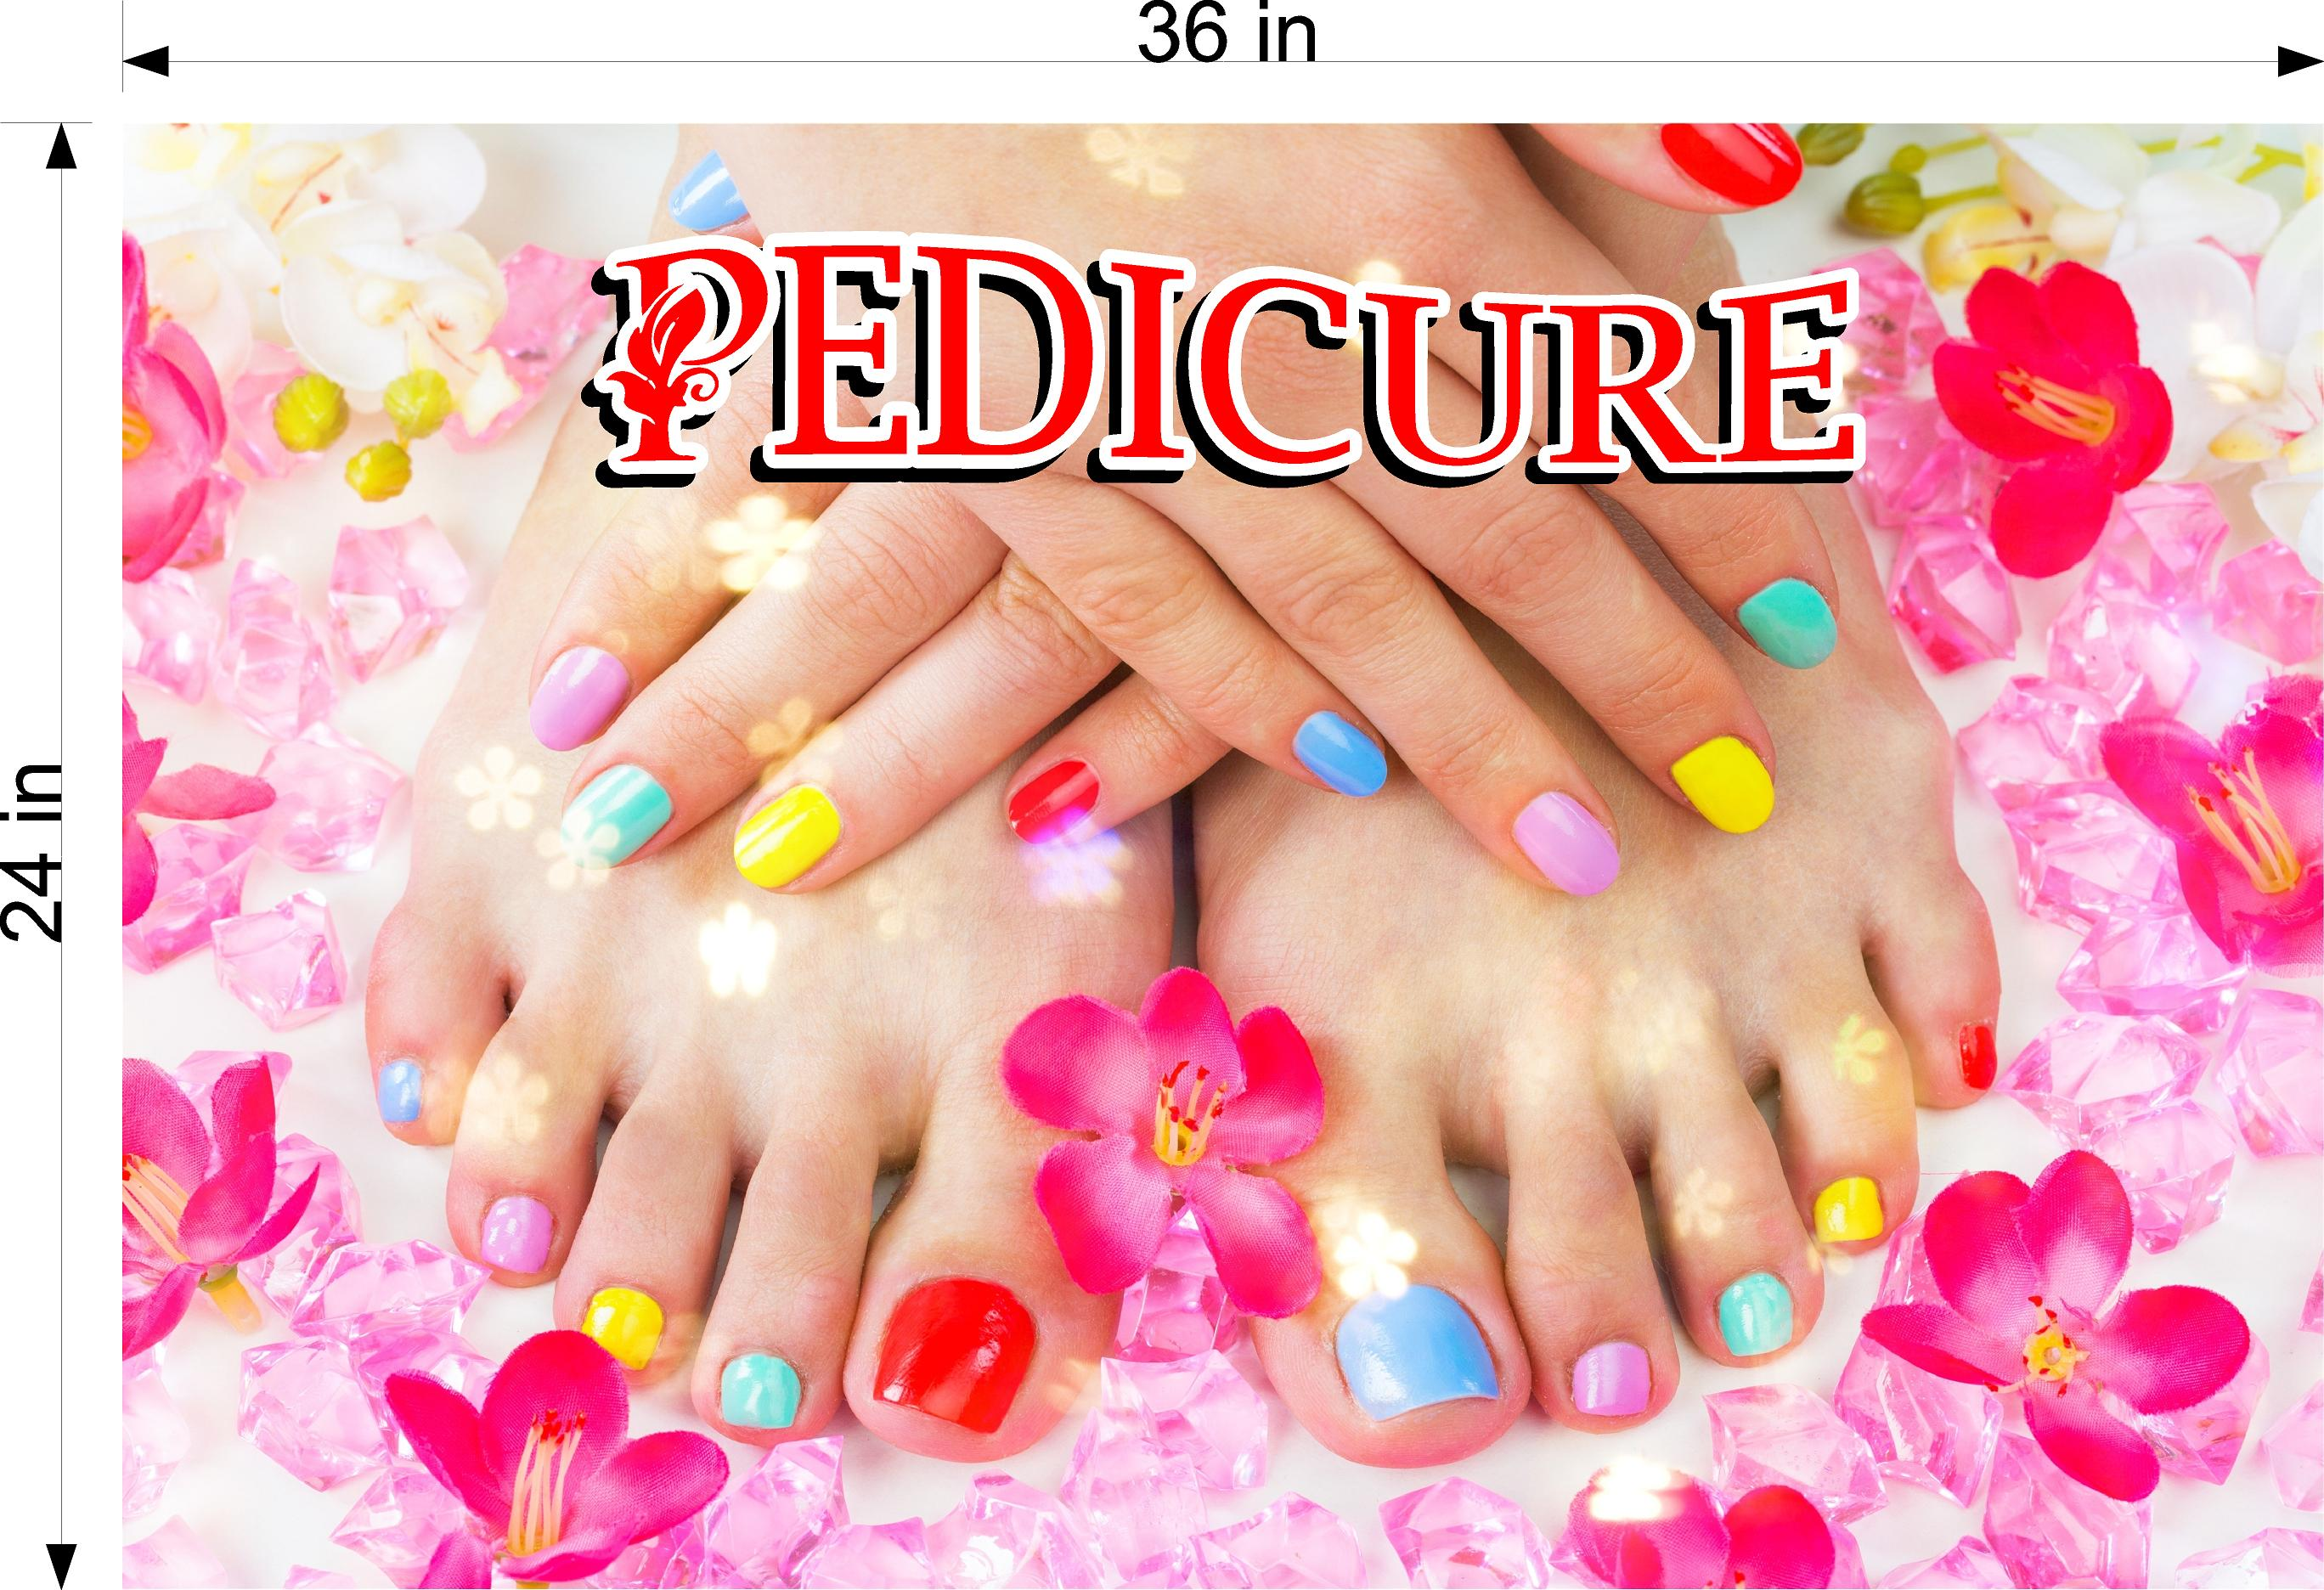 Pedicure 29 Photo-Realistic Paper Poster Premium Matte Interior Inside Sign Advertising Marketing Wall Window Non-Laminated Horizontal